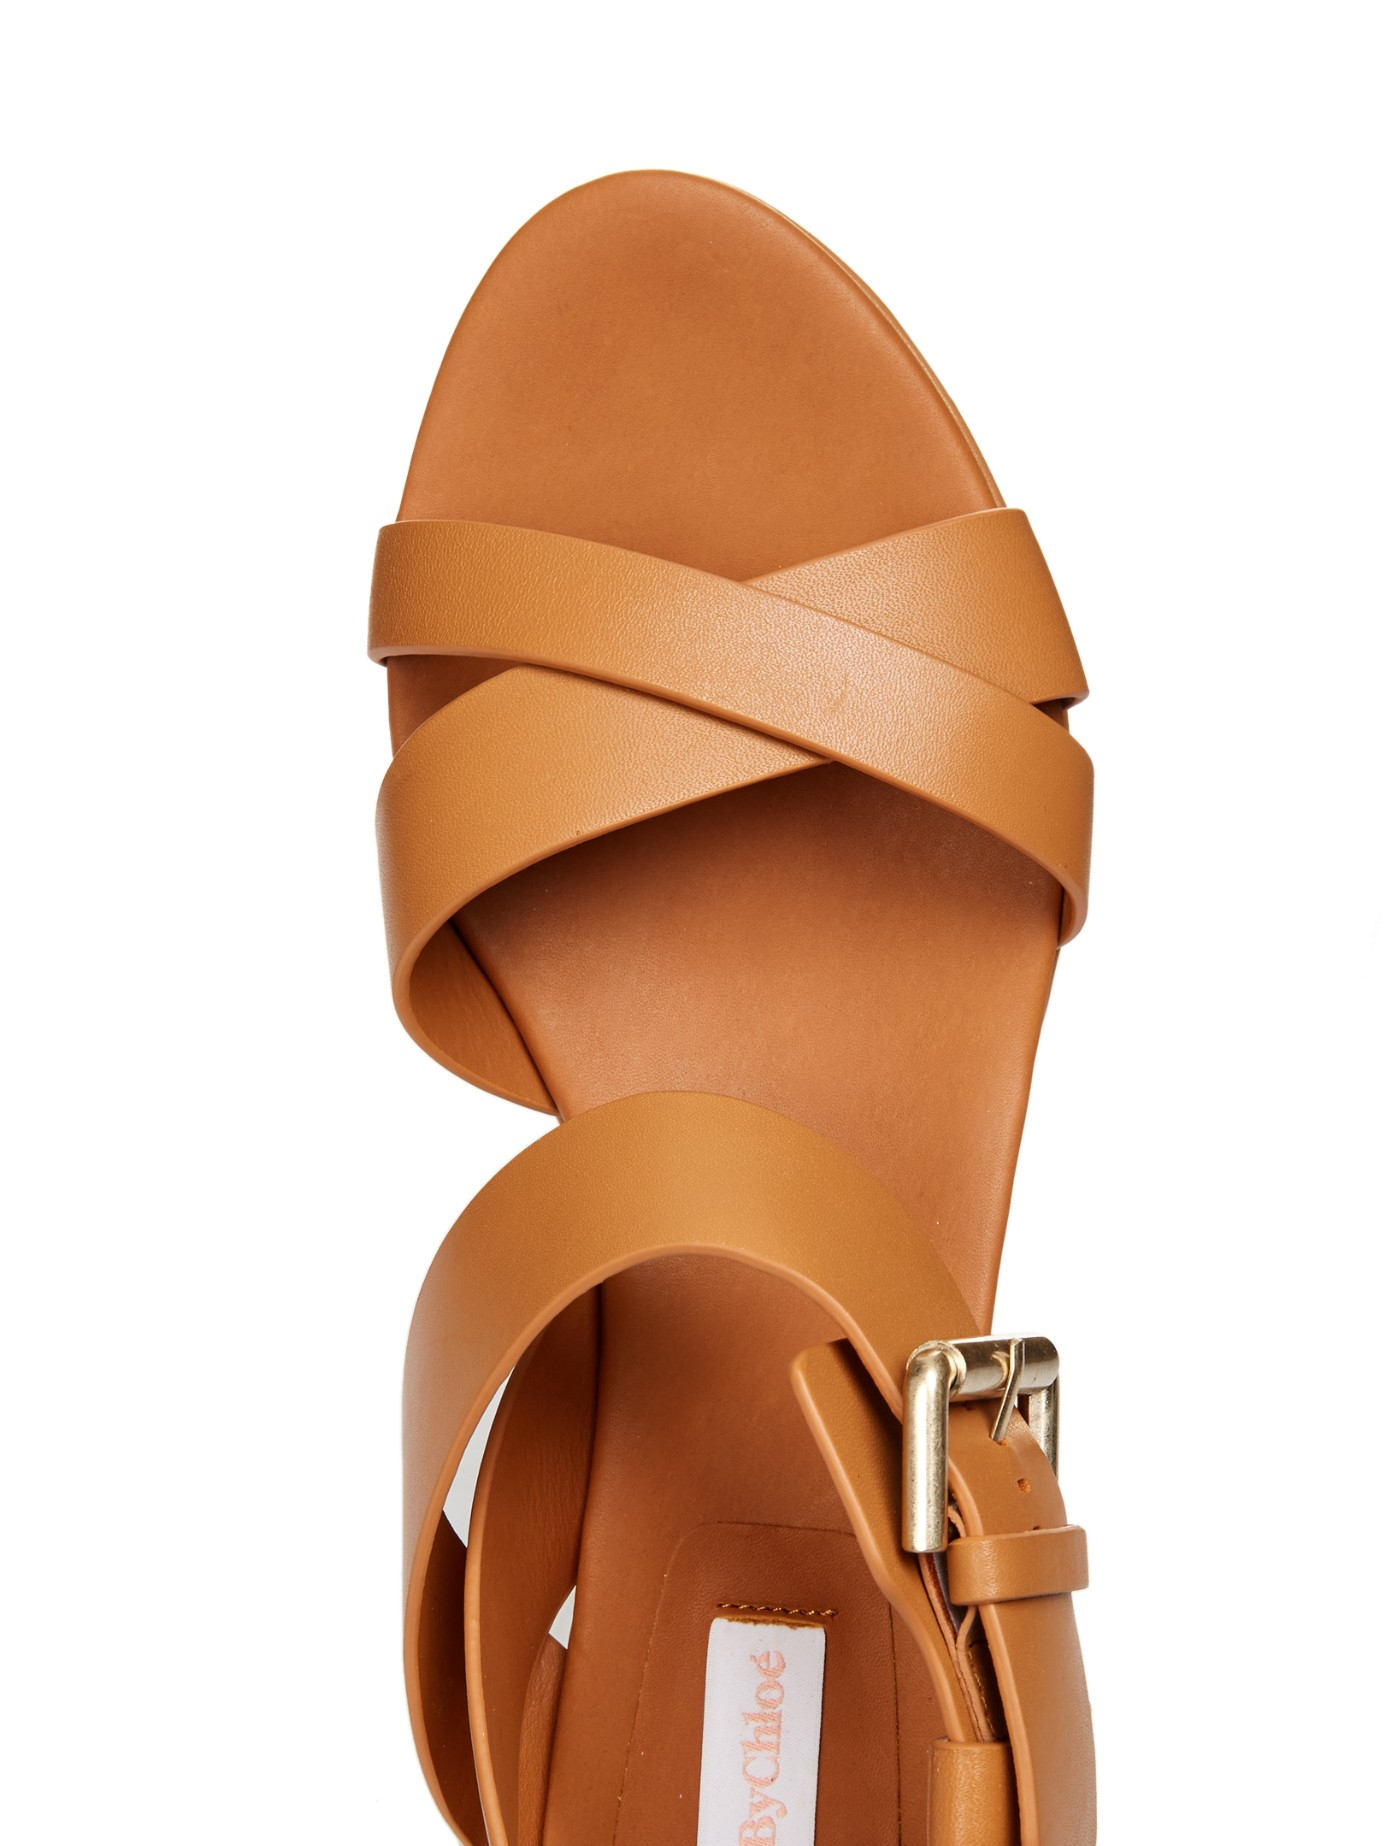 discount newest Chloé crossover sandals discount wholesale where can you find TMXlI5i